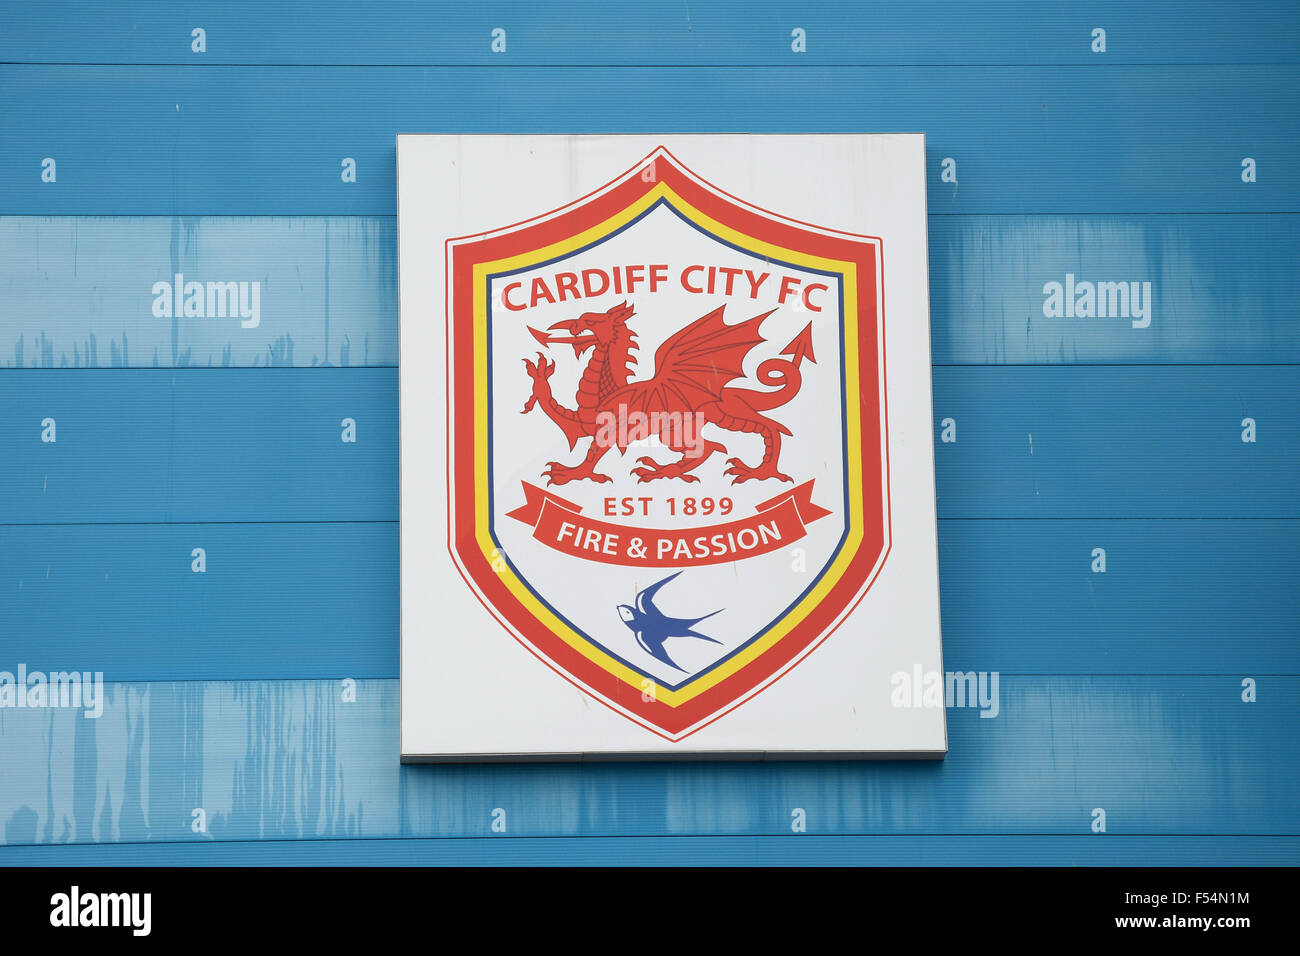 Cardiff City FC  (CCFC) badge logo at the Cardiff City Stadium in Cardiff, Wales. - Stock Image